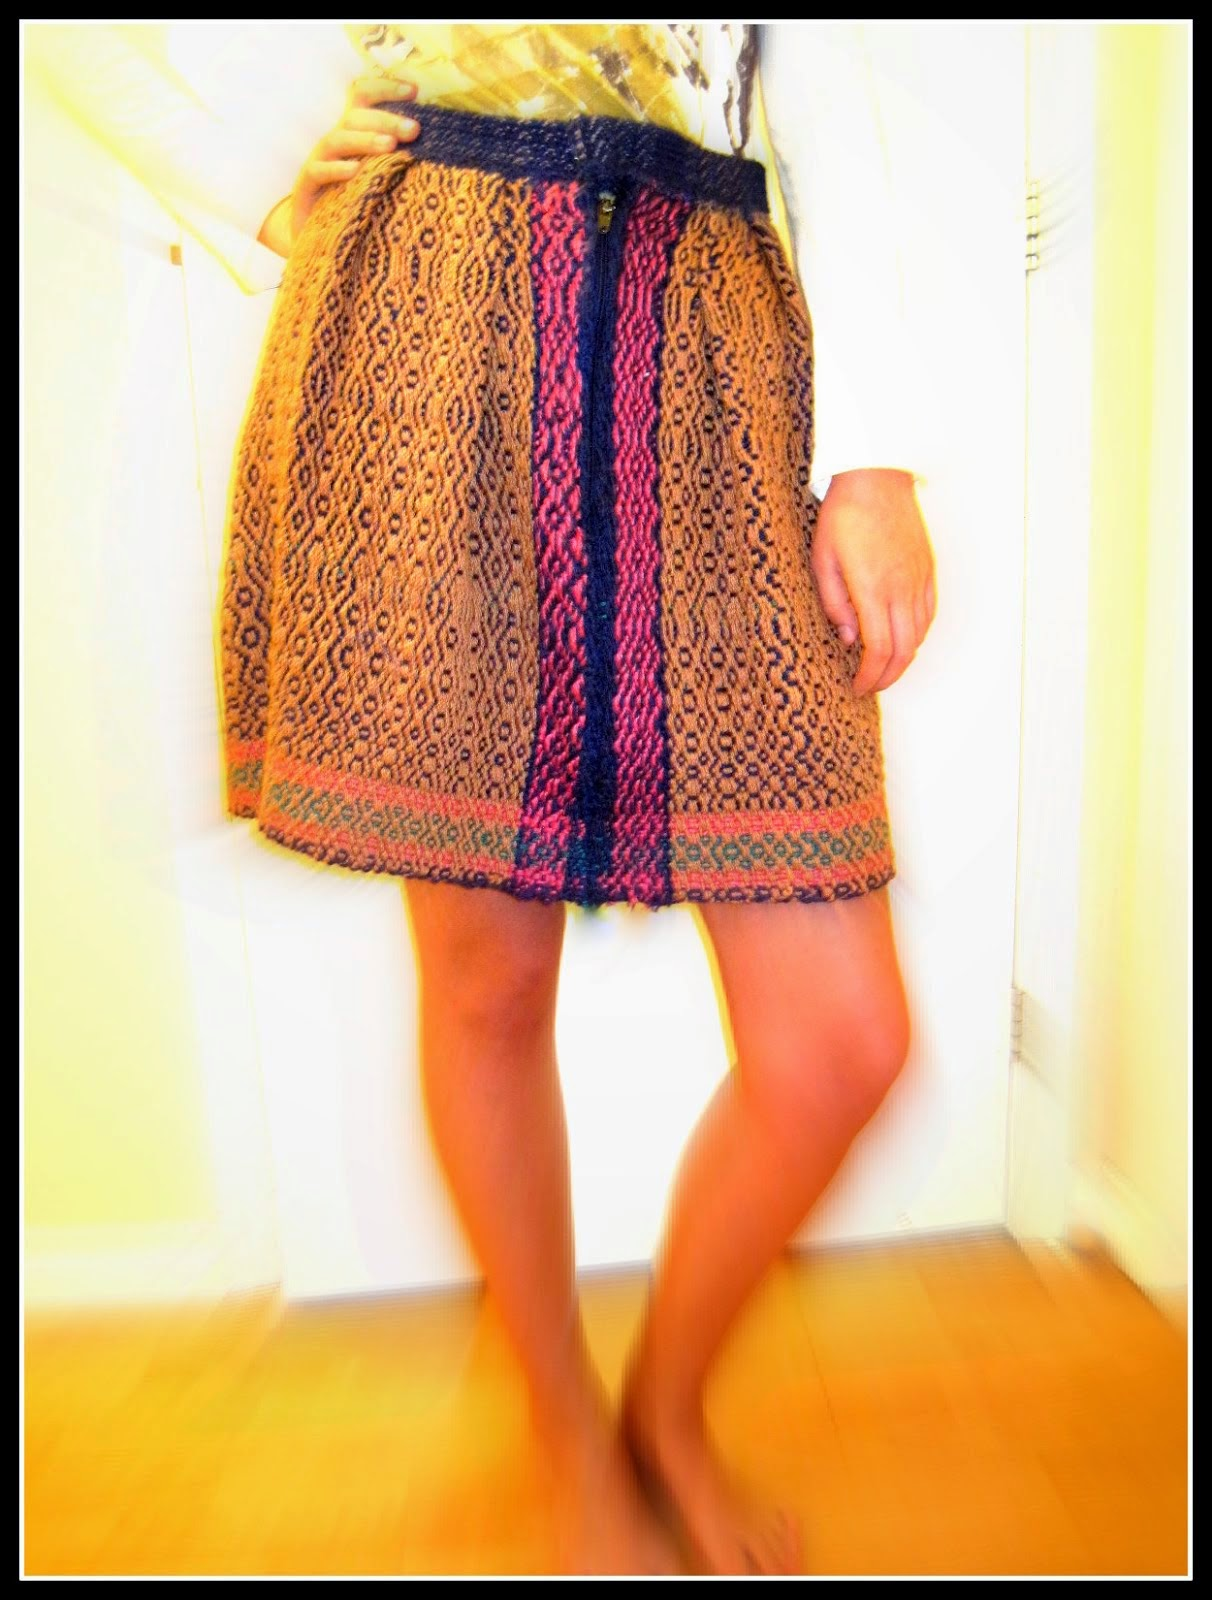 Handwoven skirt